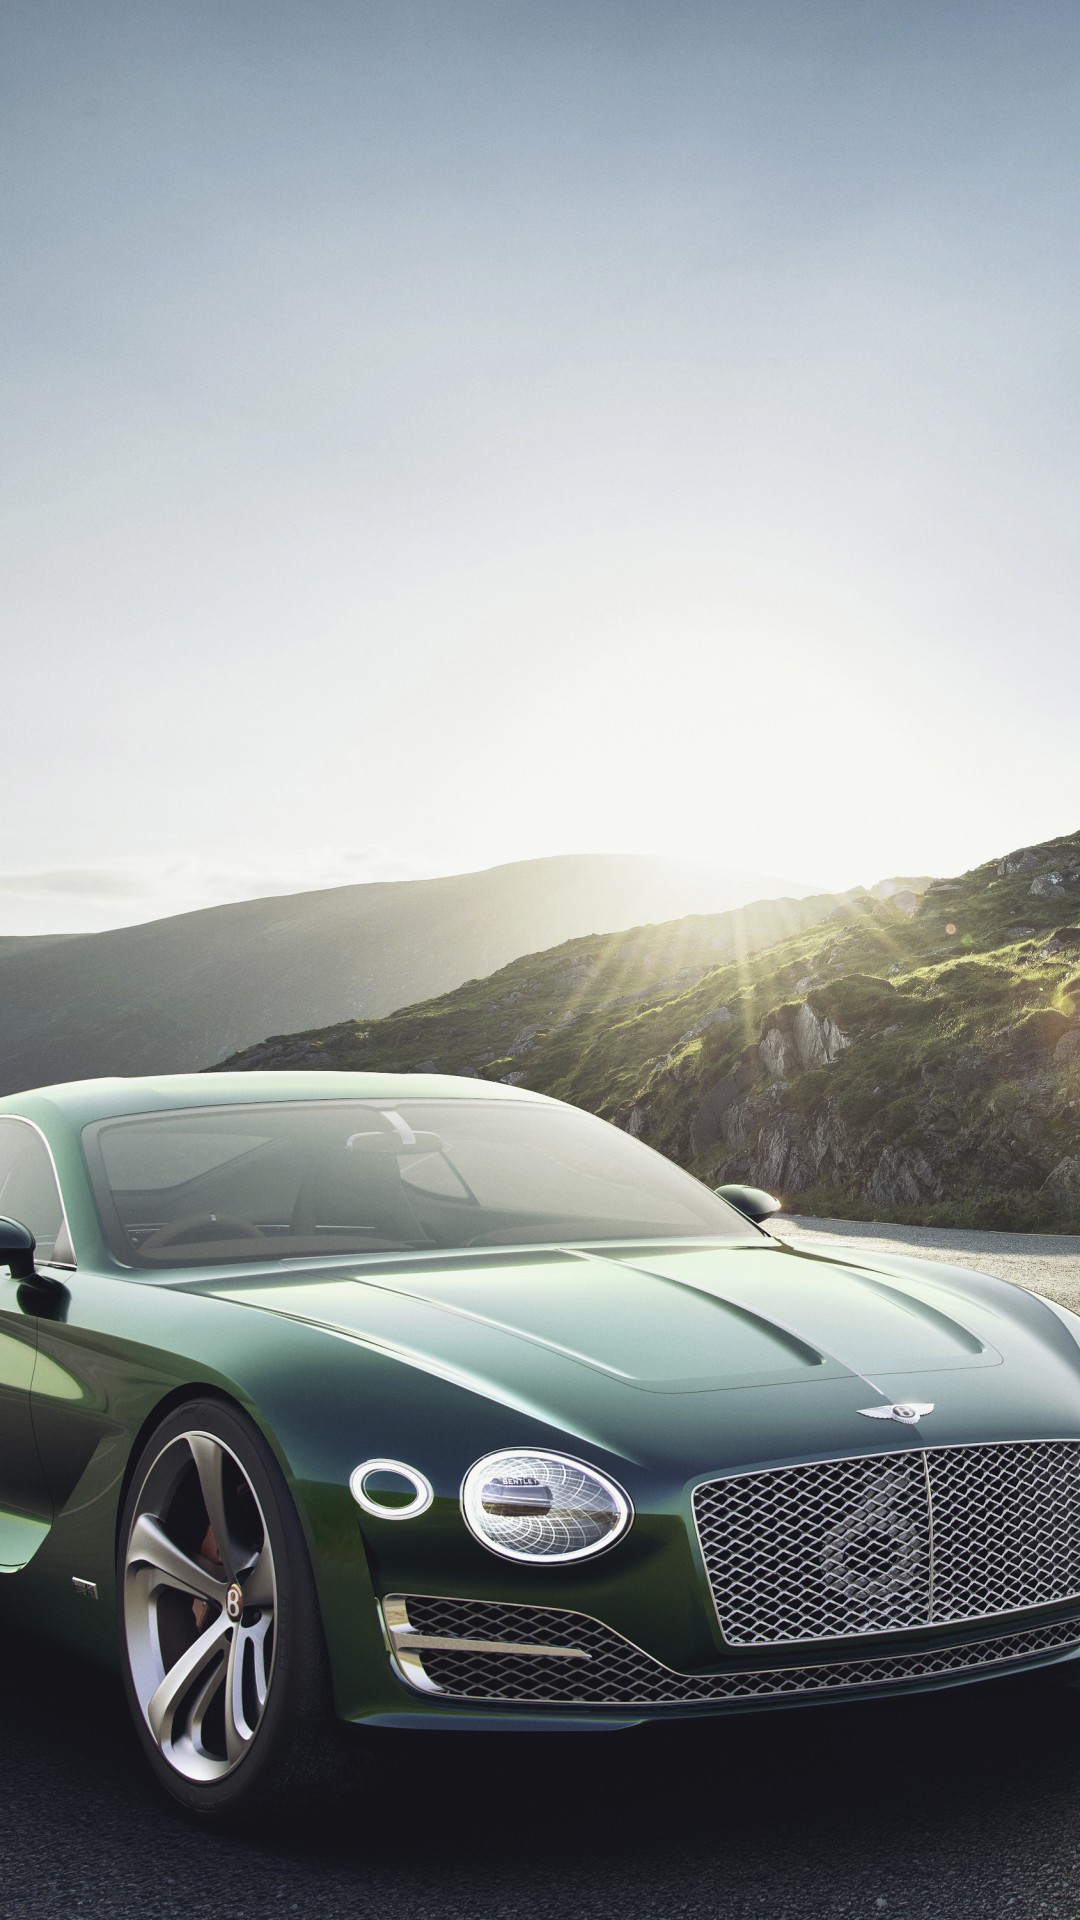 Wallpaper Bentley Exp 10 Speed 6 Luxury Car Coupe